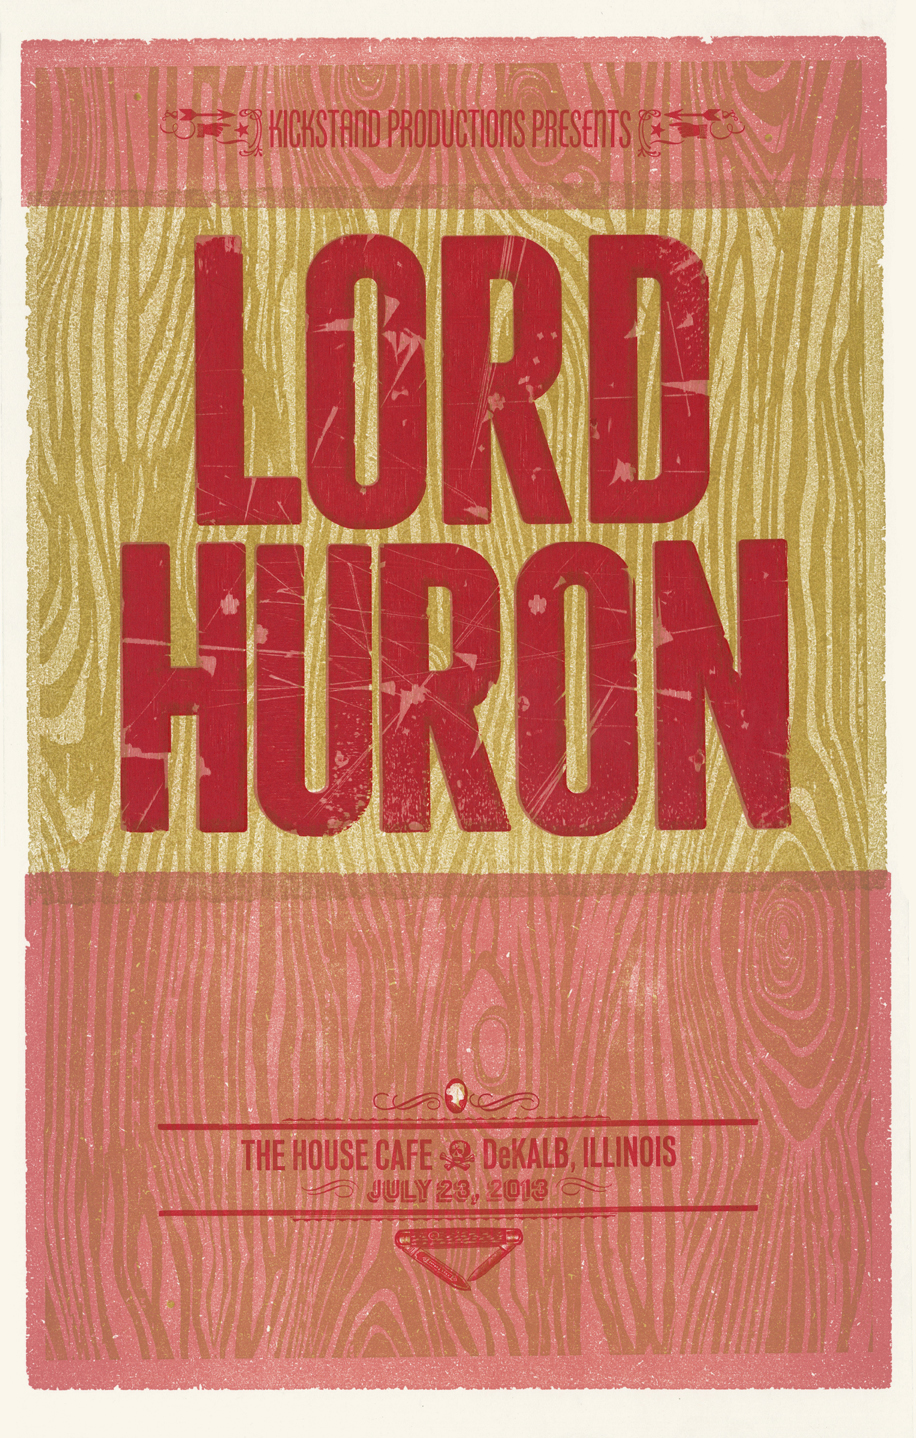 Lord Huron, 4-color letterpress show poster, 2013